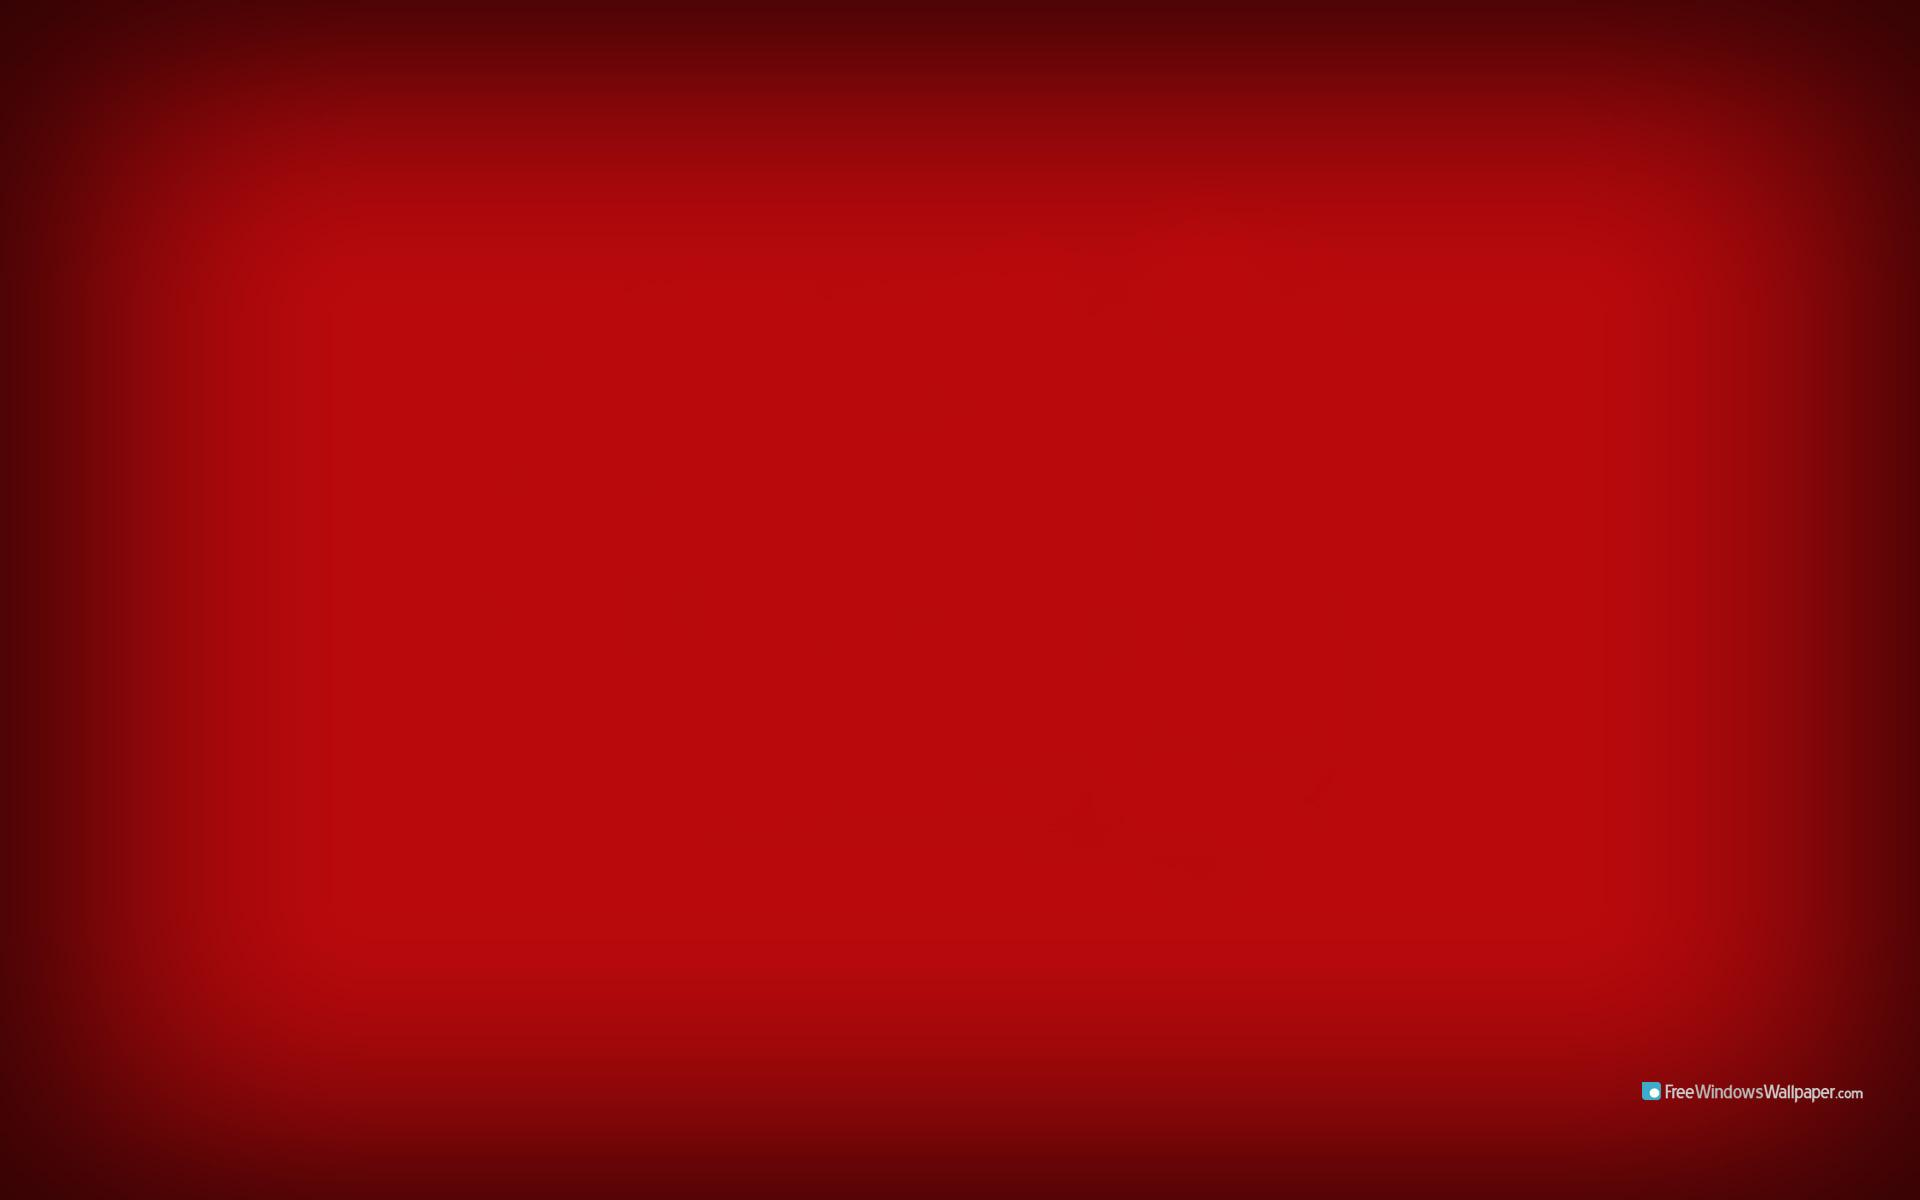 wallpaper solid red wallpaper Black Background and some PPT Template 1920x1200